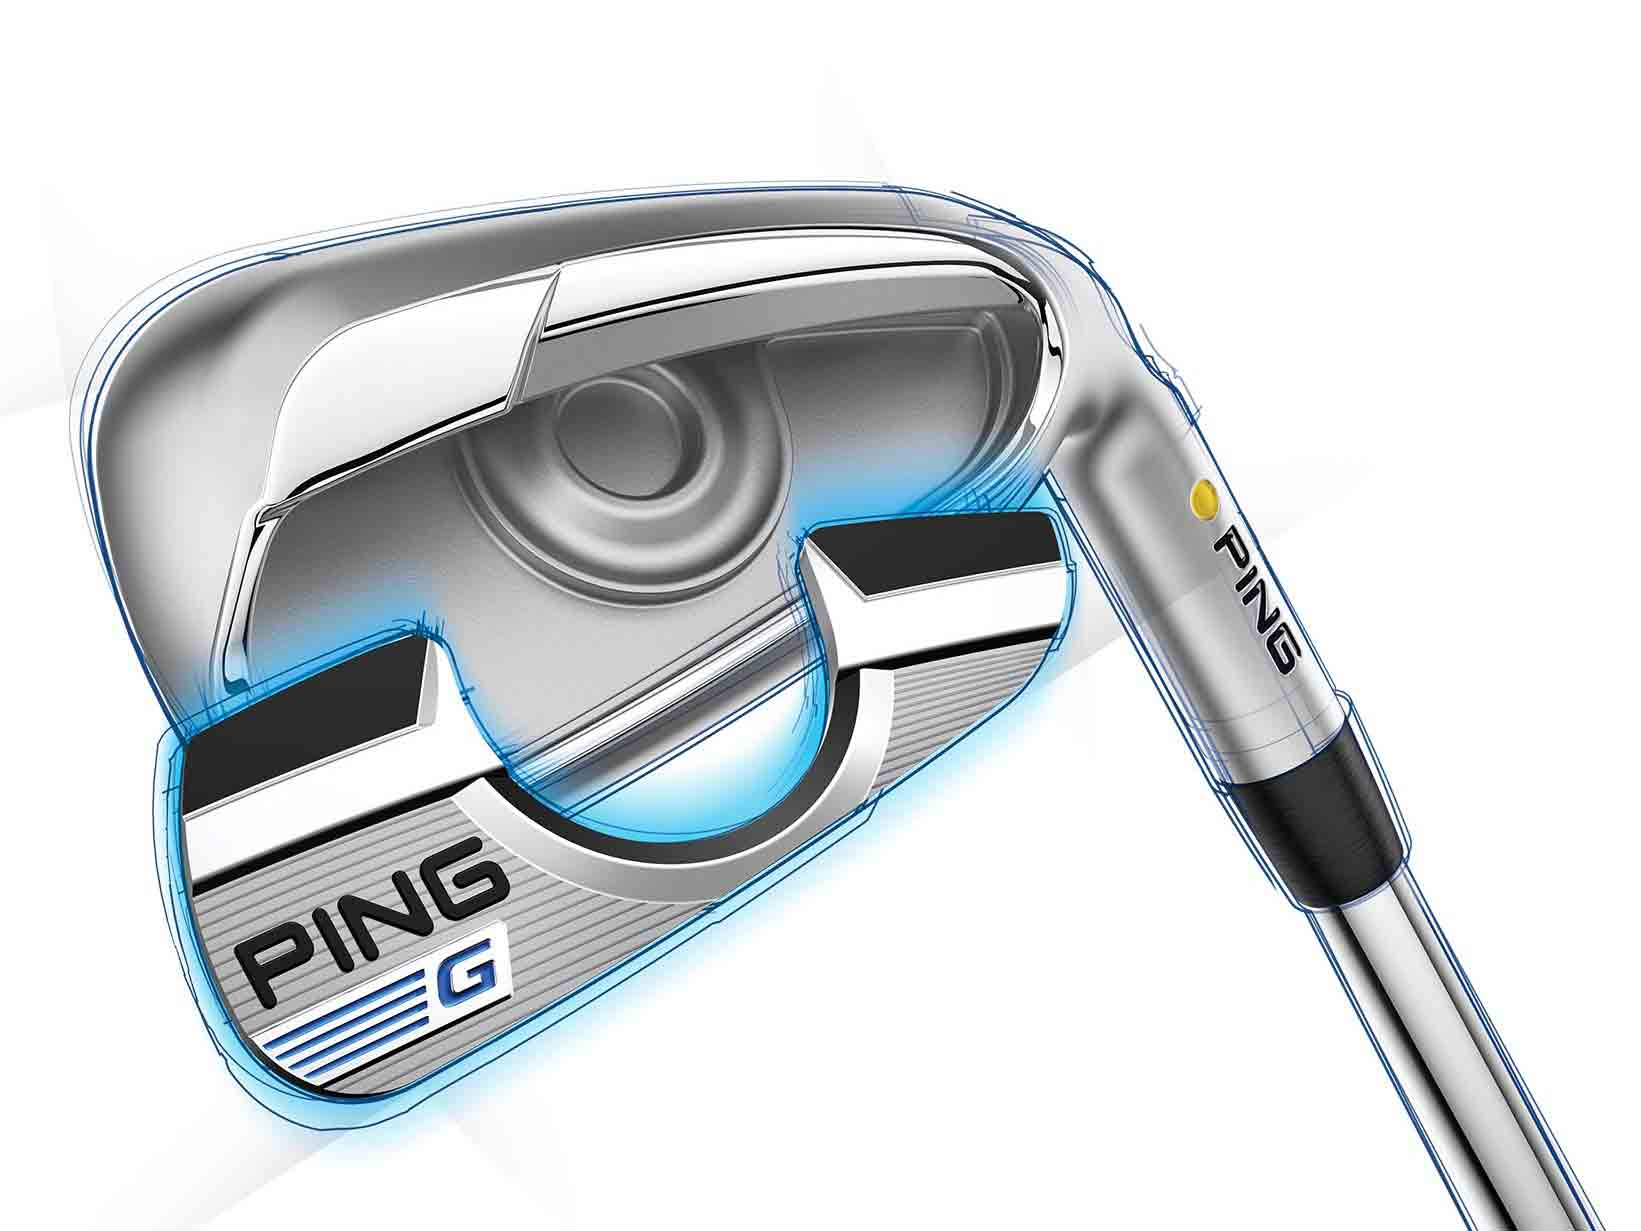 Ping g irons review ping g iron badge nvjuhfo Image collections